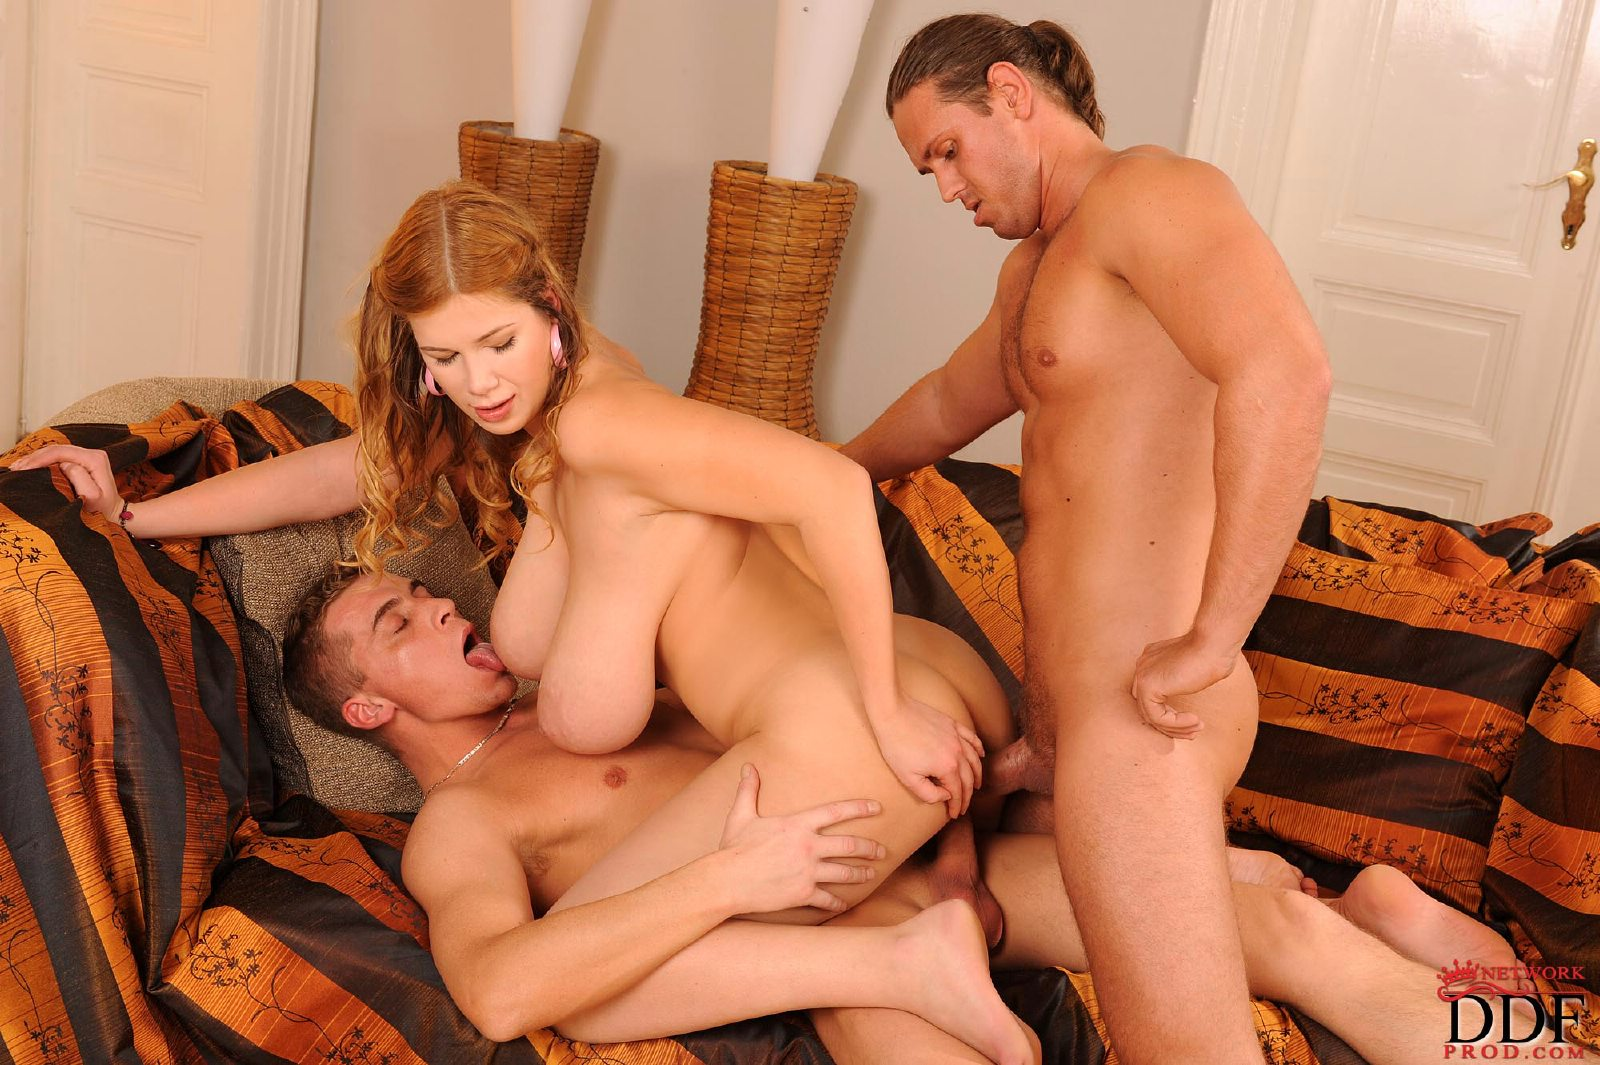 Terry Nova getting fucked by two guys at once.